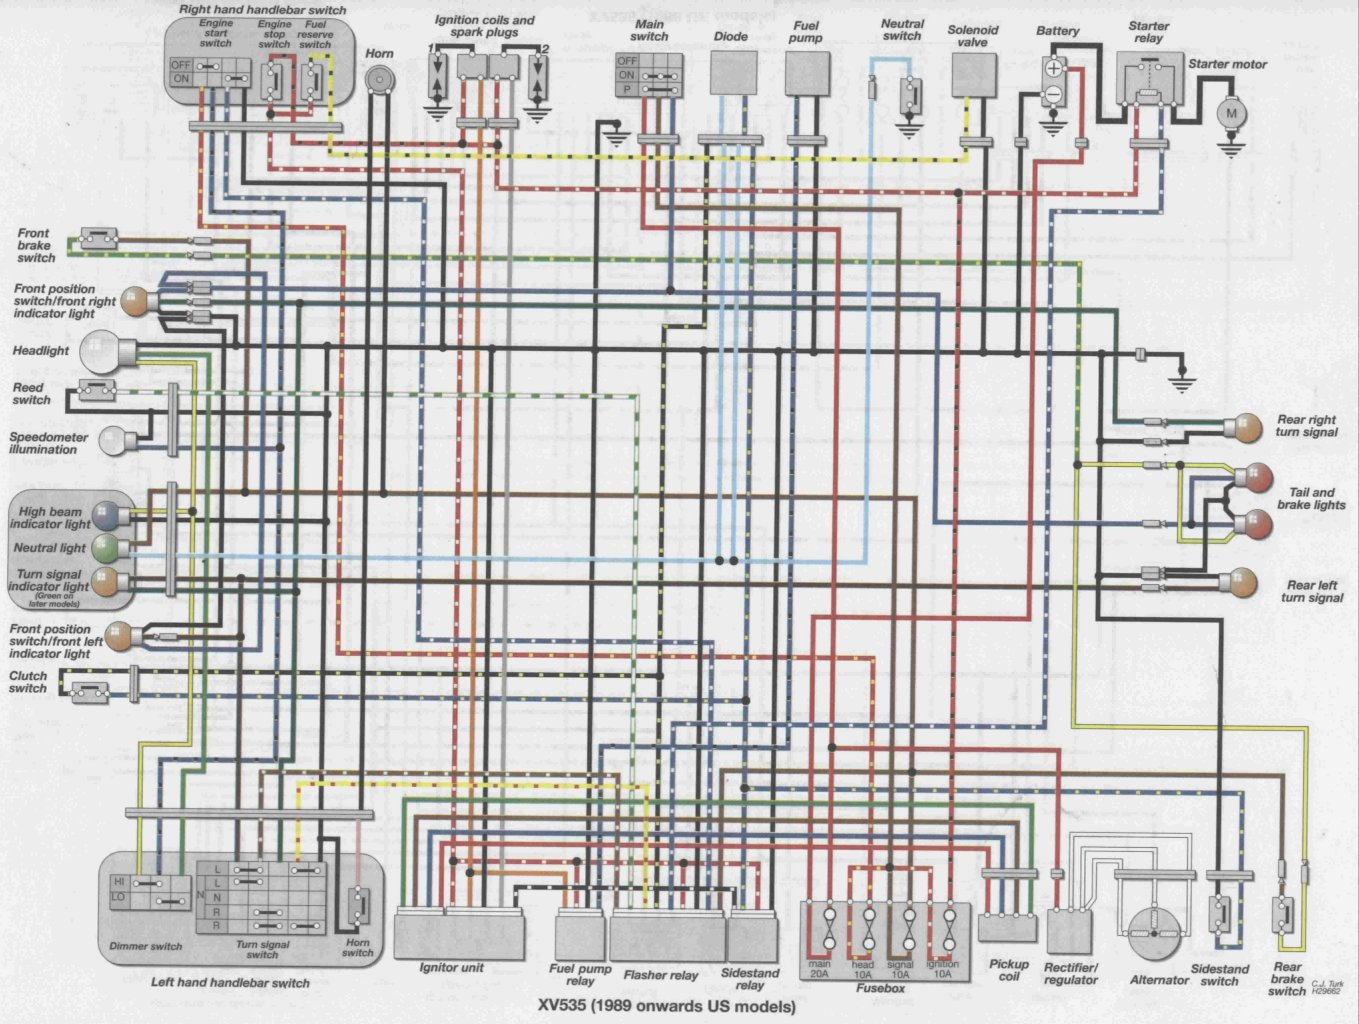 89_96_us_XV535 viragotechforum com \u2022 view topic xv535sh wiring virago wiring diagram at soozxer.org